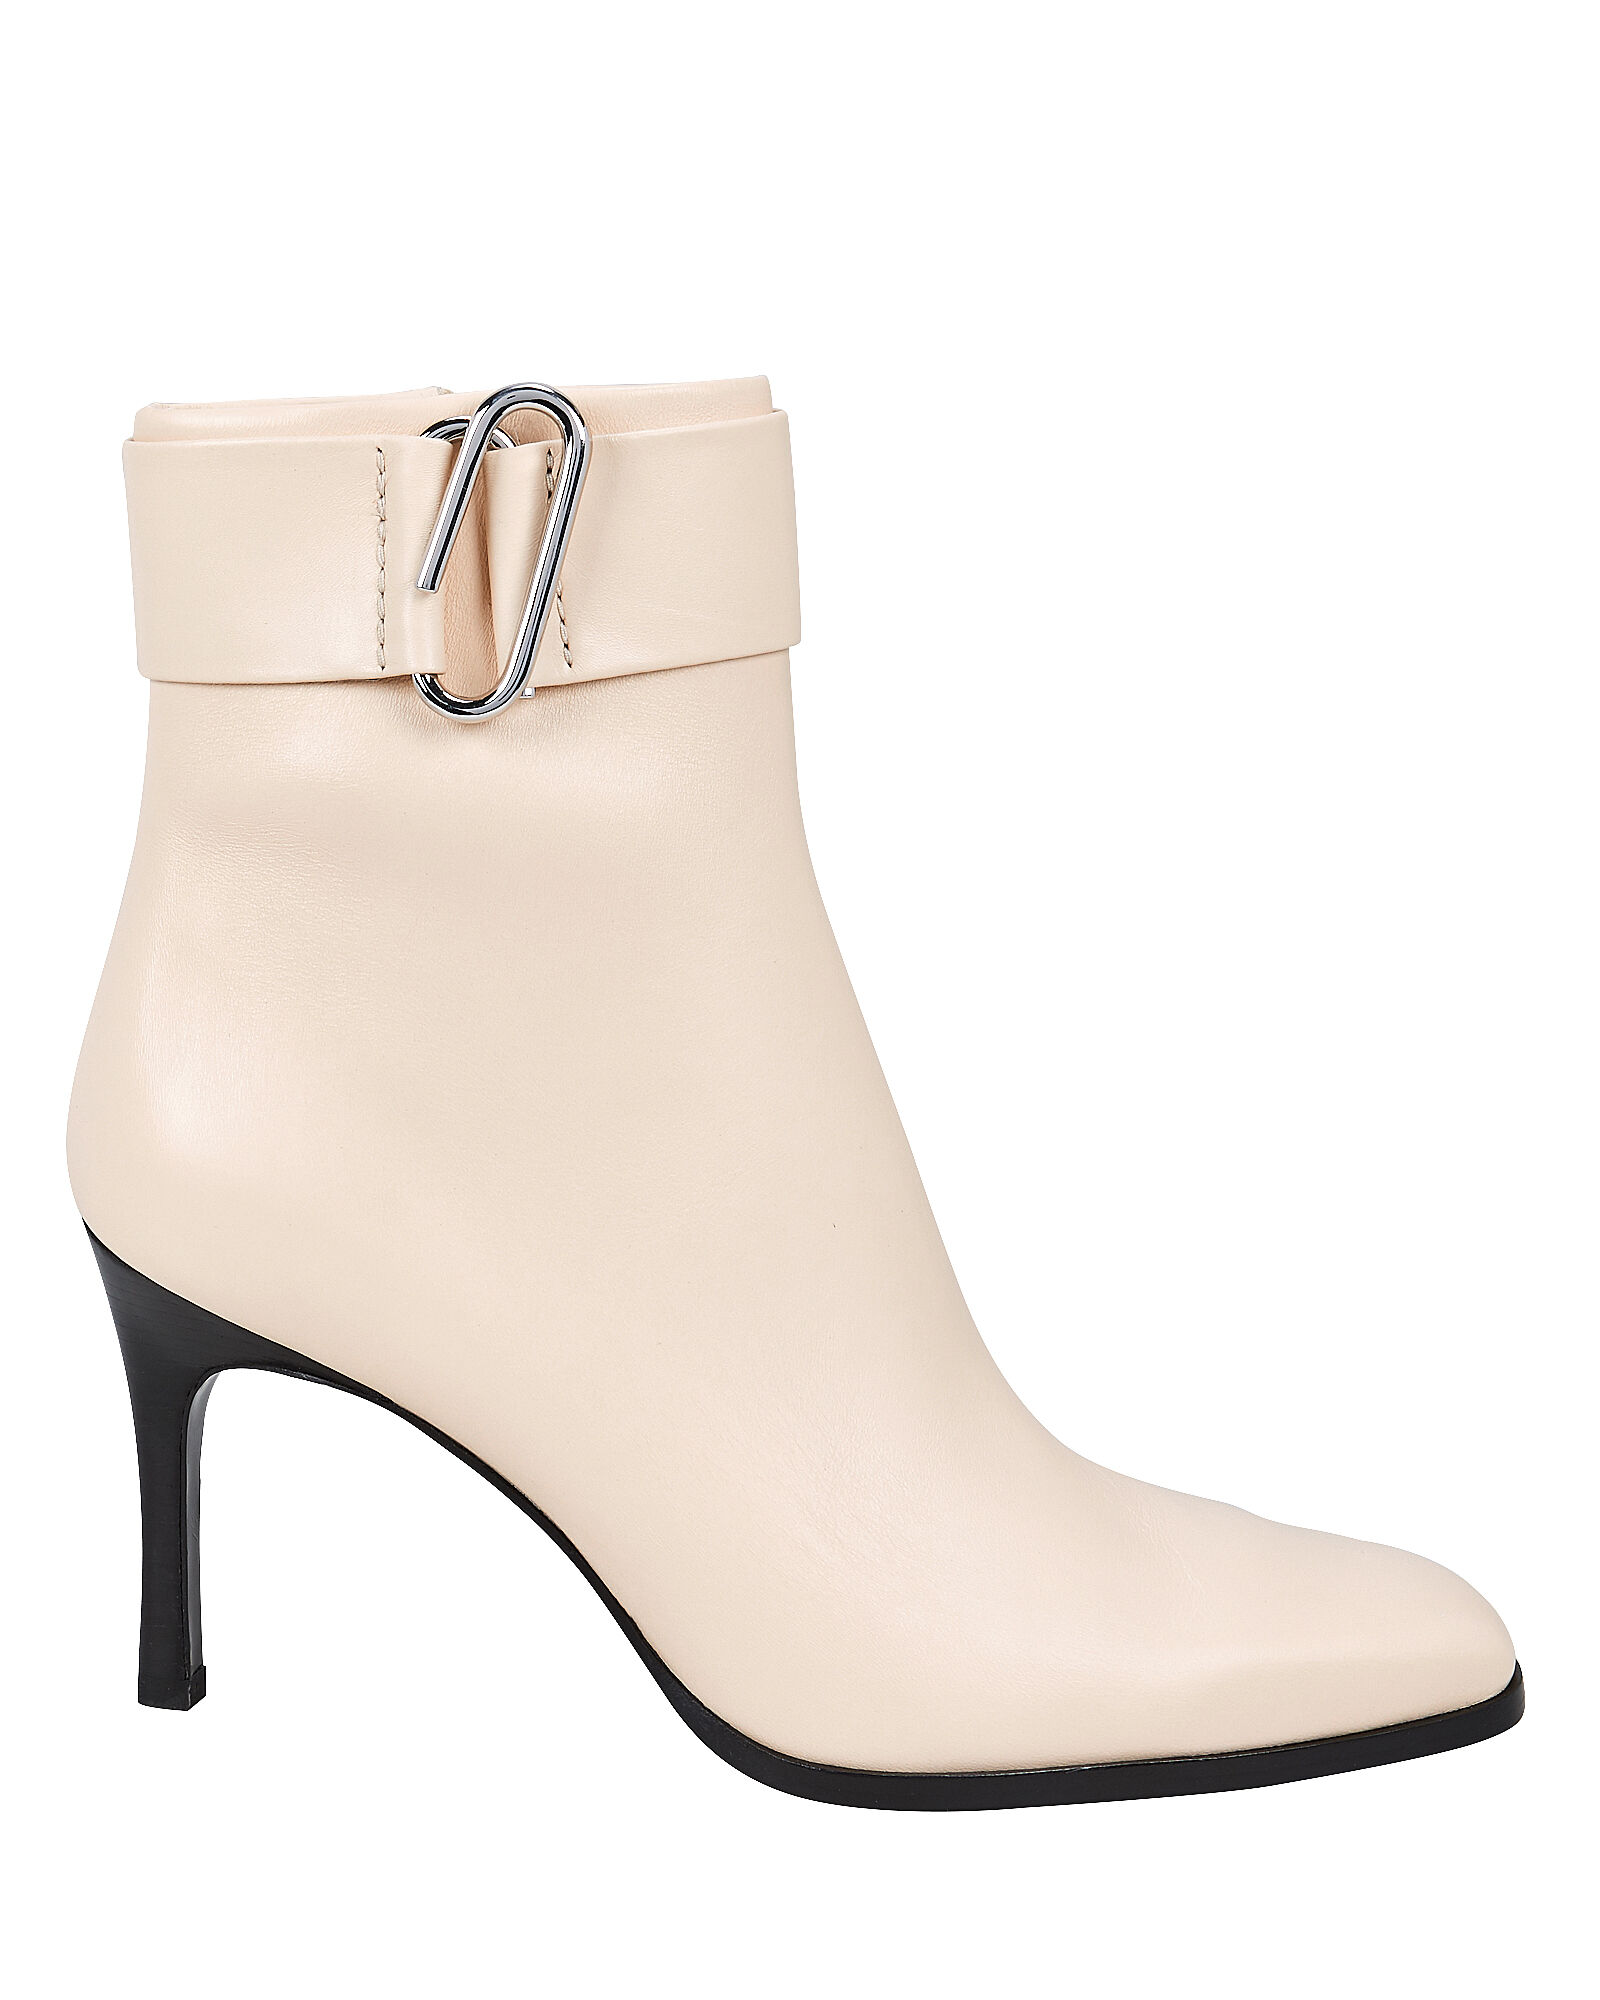 Alix Heeled Leather Booties, IVORY, hi-res